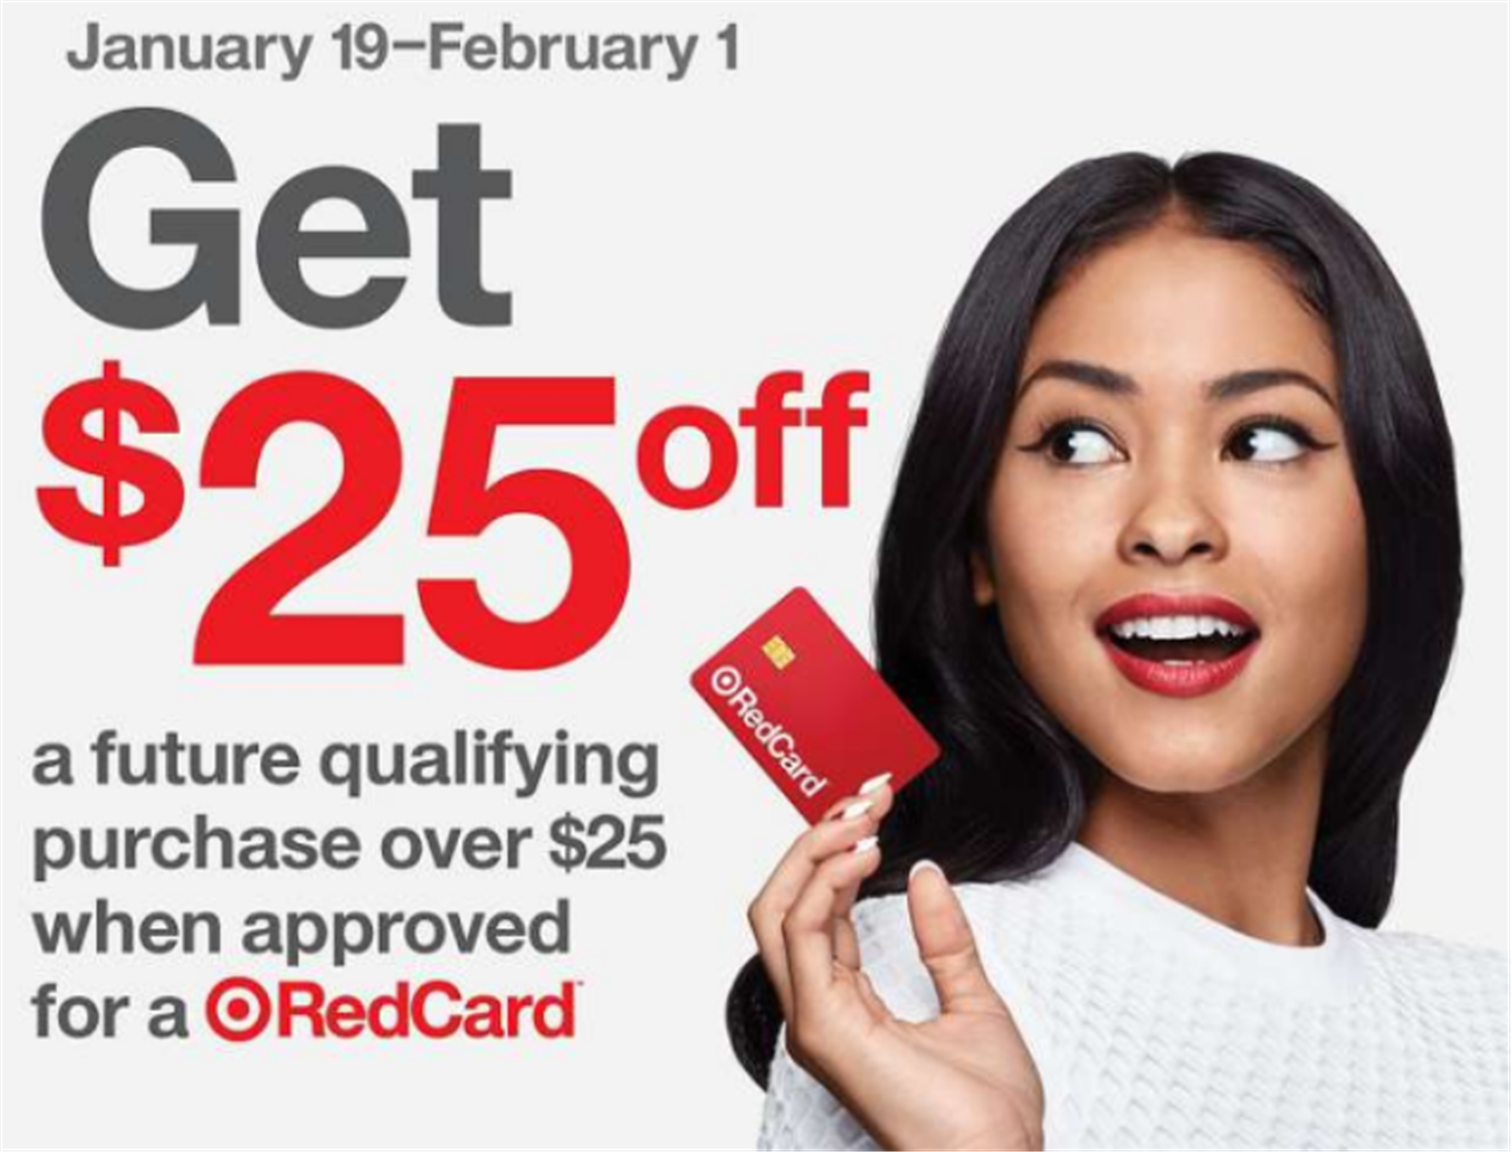 Target – $25 Off $25 Purchase Coupon for New RedCard Holders! Sign Up Now!